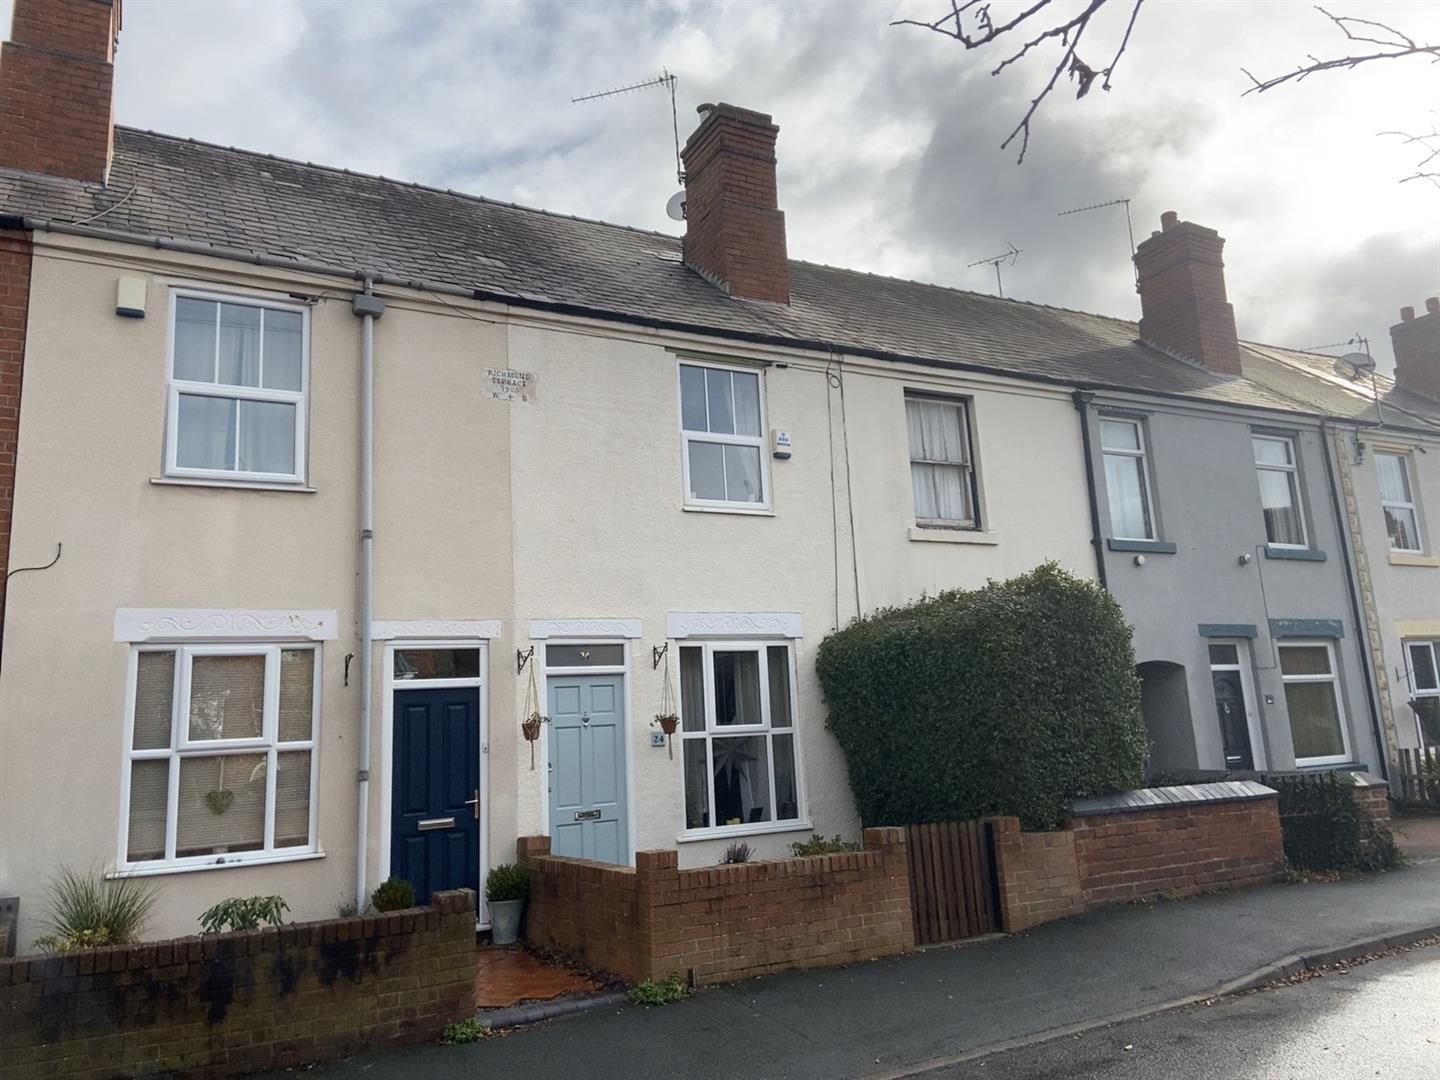 3 bed terraced for sale in Wollaston 25